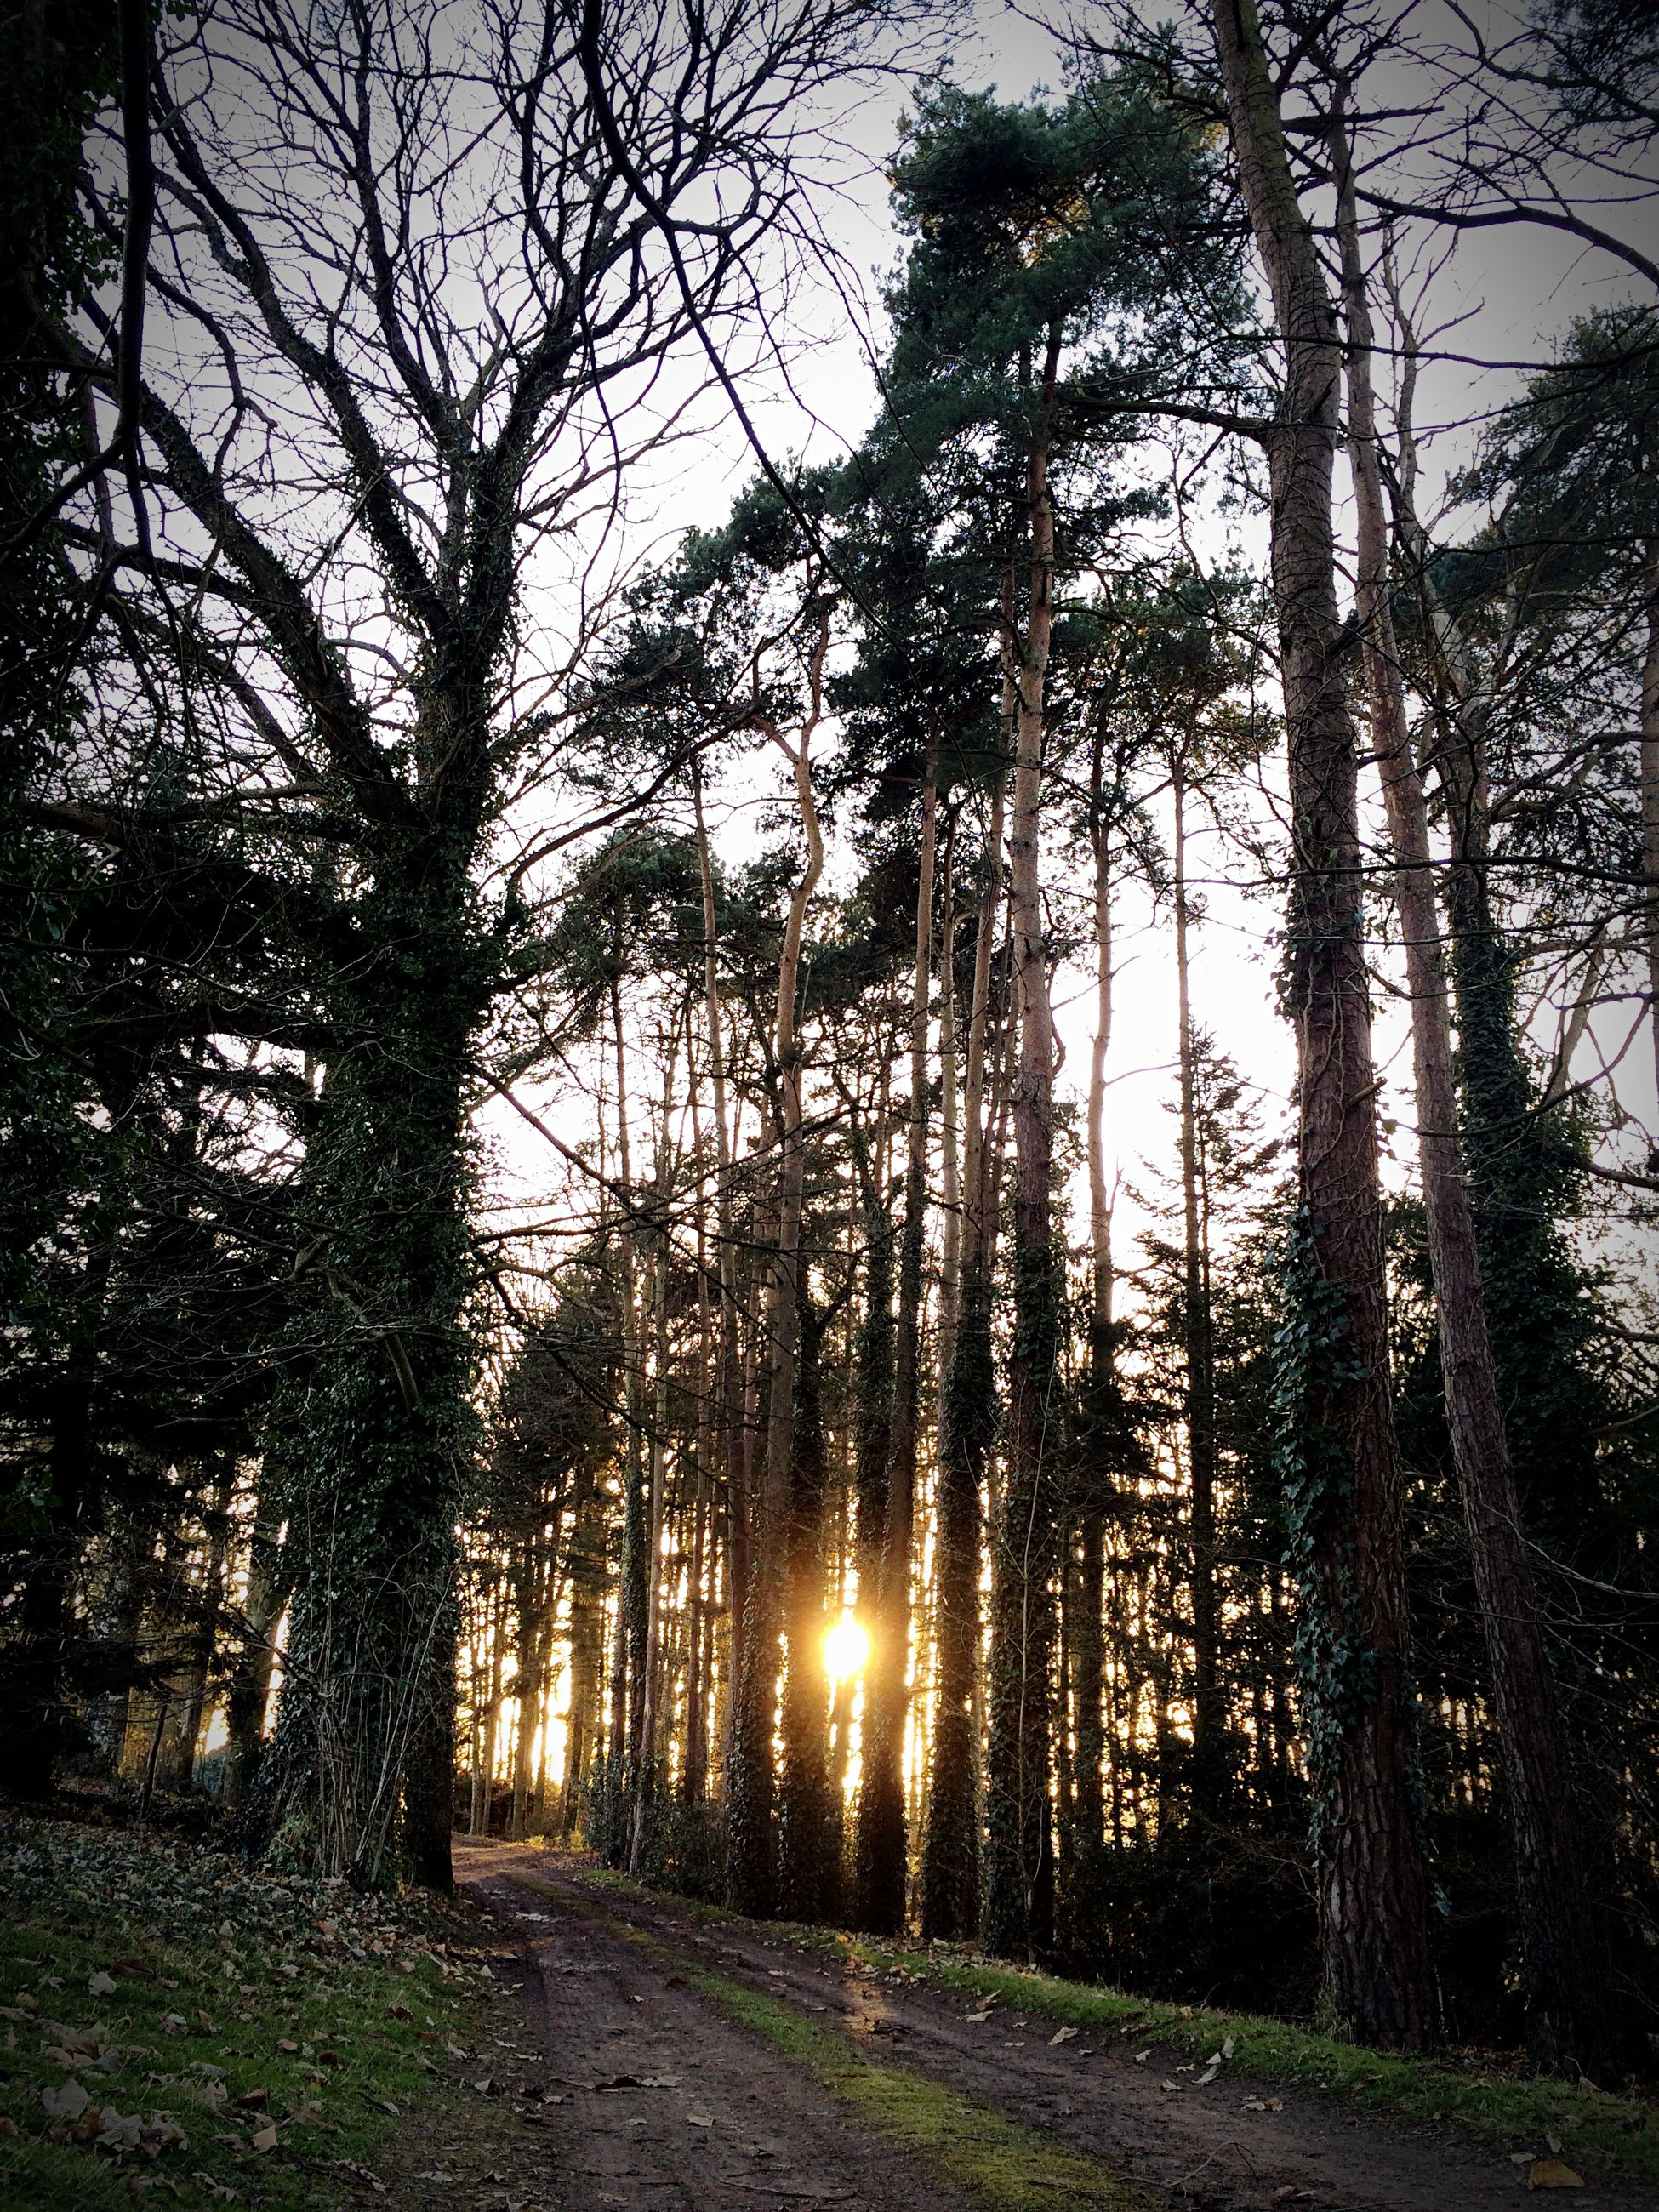 tree, tranquility, tranquil scene, bare tree, nature, tree trunk, the way forward, scenics, branch, landscape, growth, beauty in nature, sunlight, sky, non-urban scene, silhouette, field, forest, sun, no people